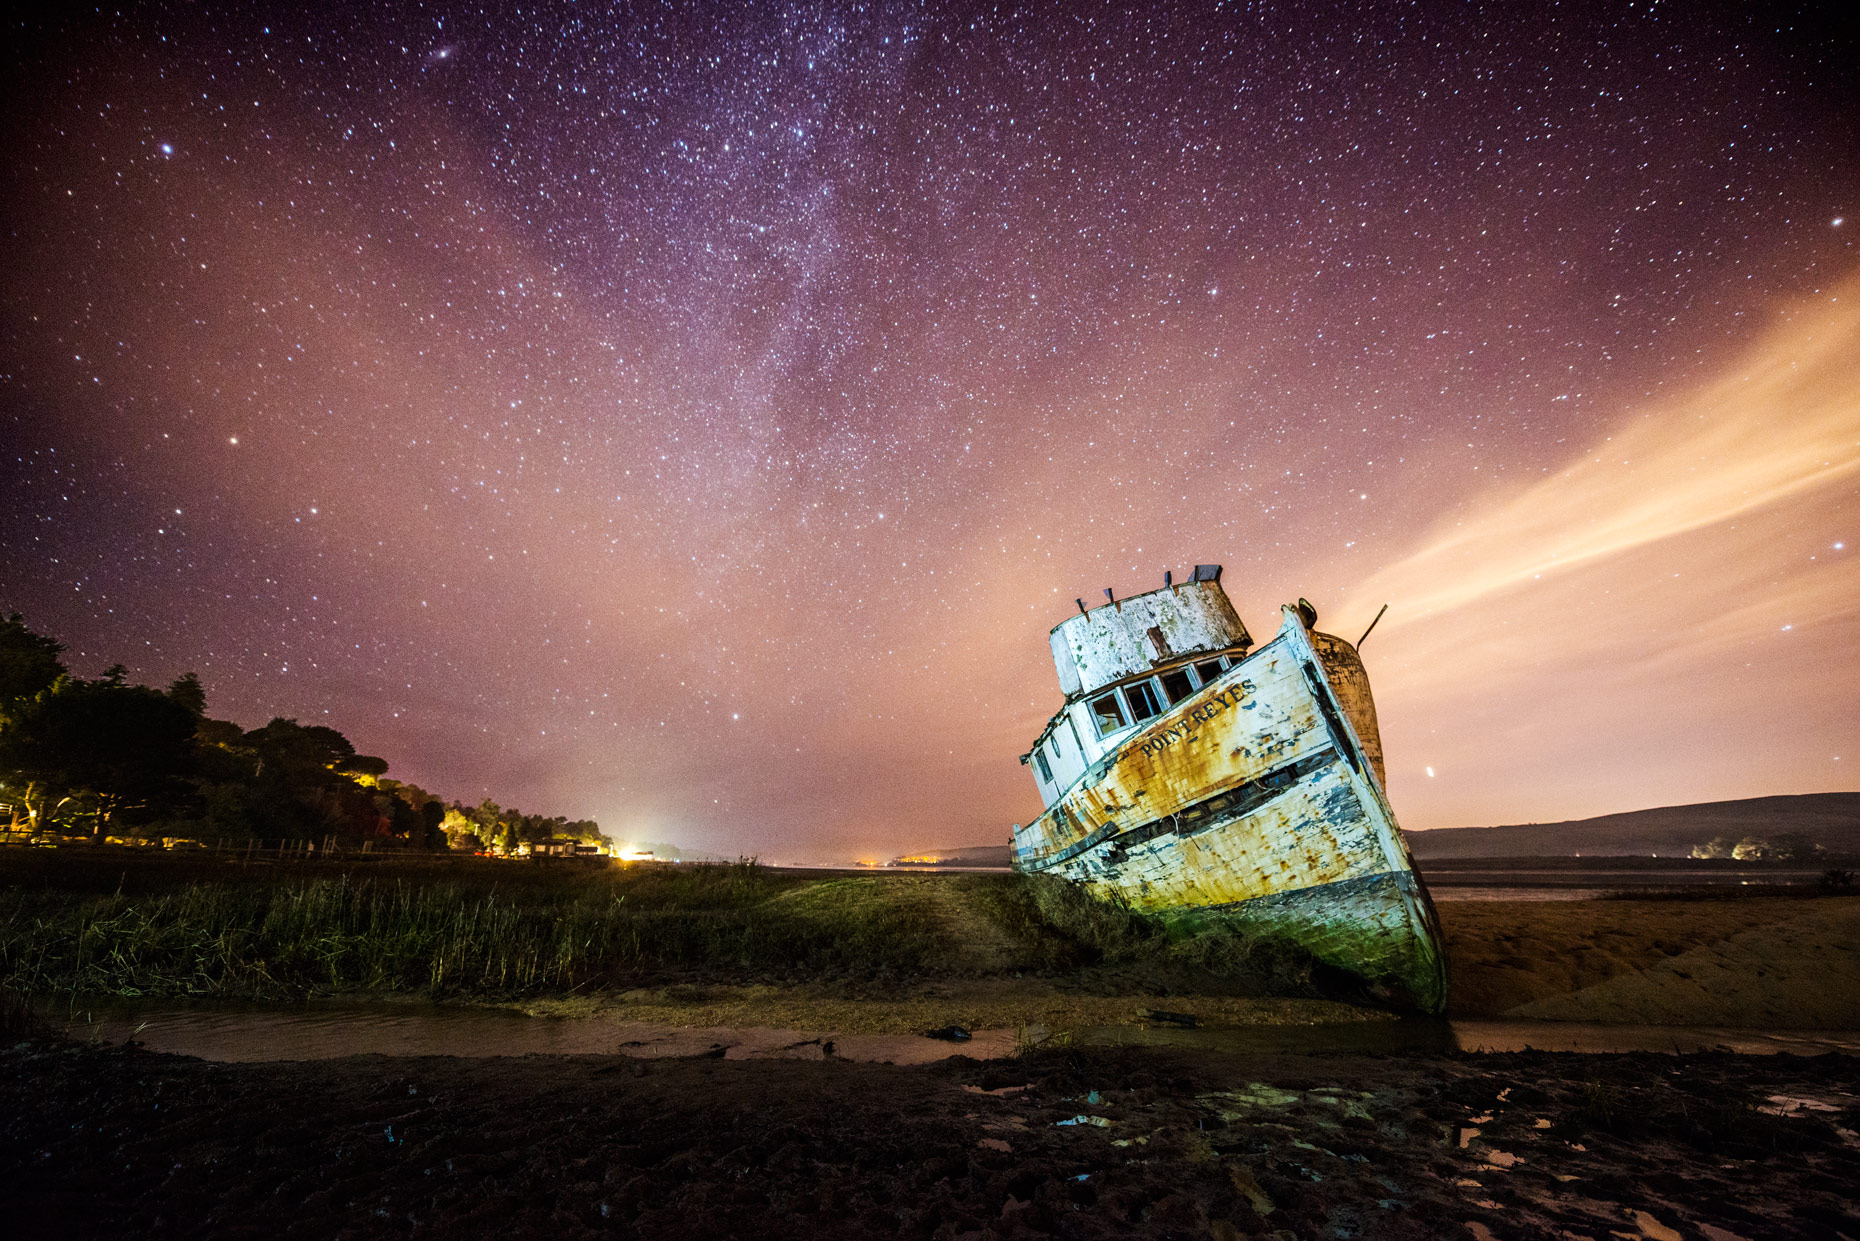 Night Sky - Point Reyes Boat Under The Stars and Milky Way, California